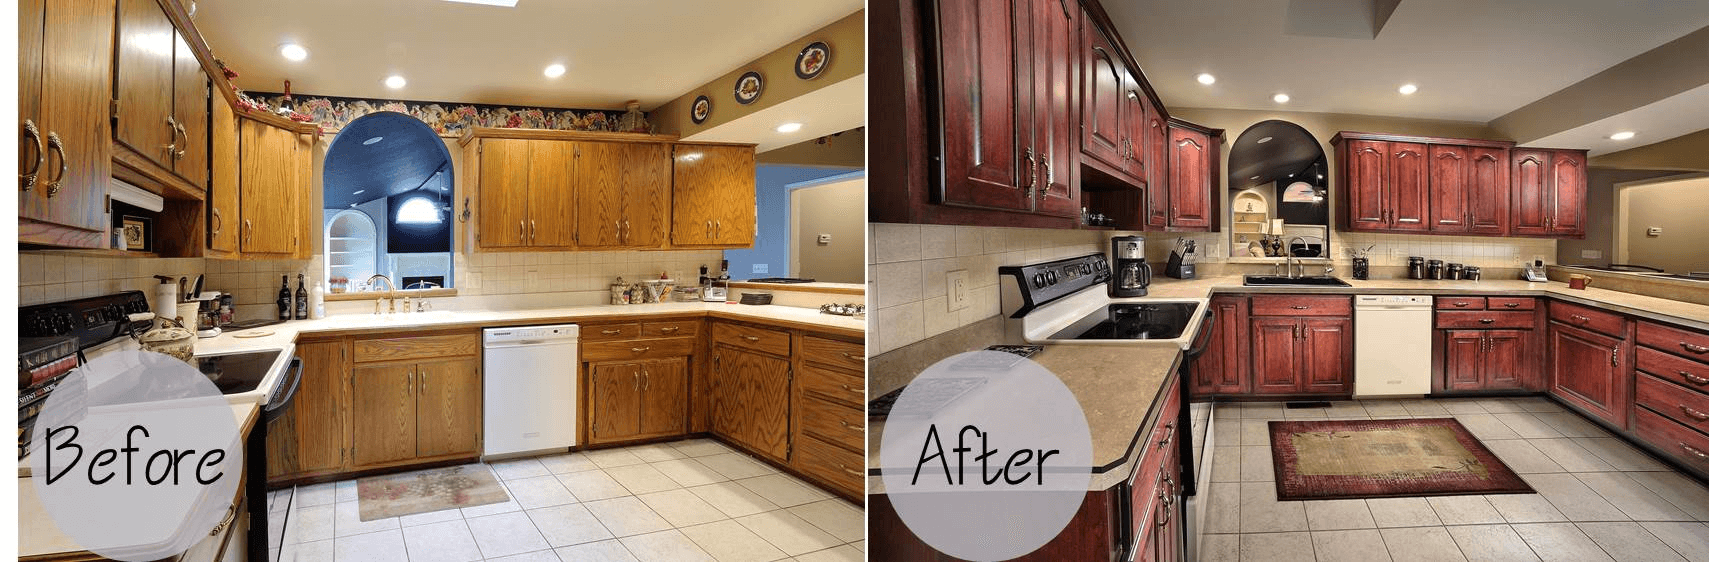 Reface Kitchen Cabinets Or New